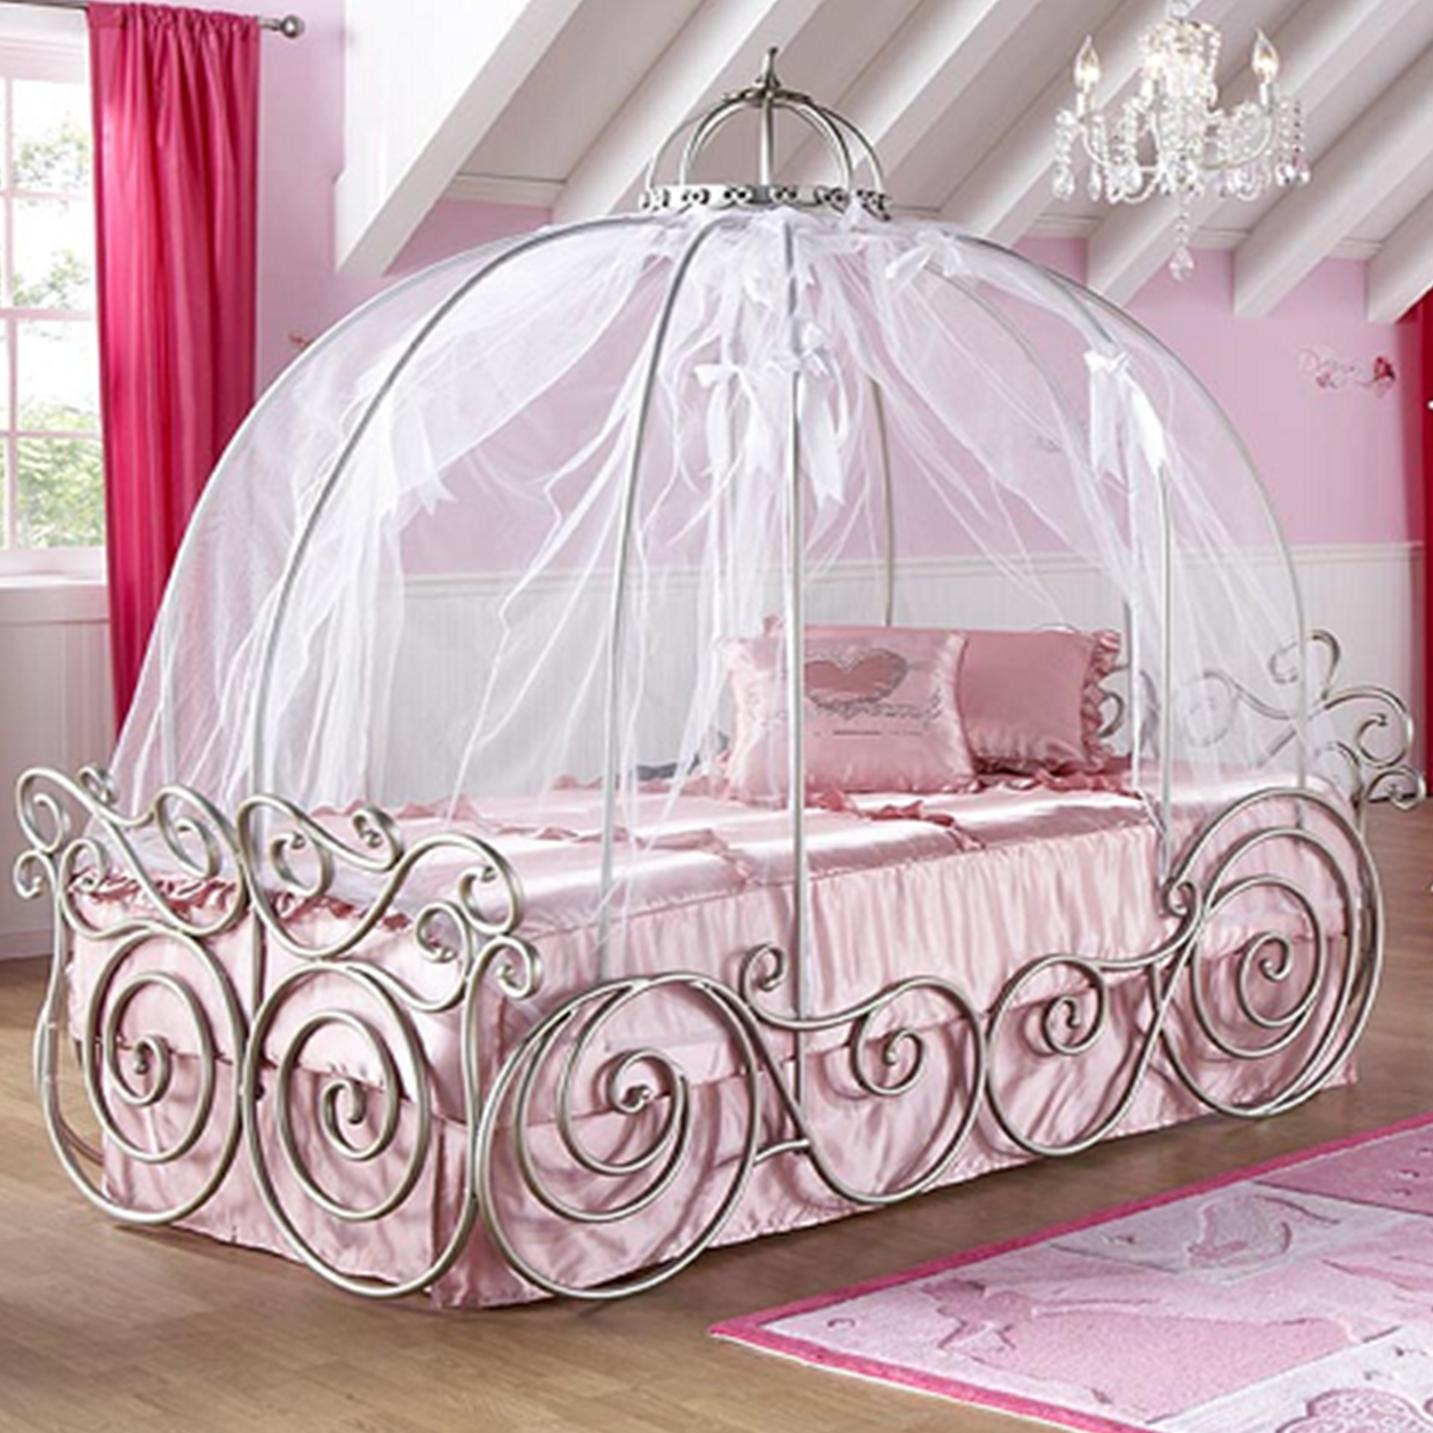 Amazing Design Of The Princess Canopy Bed With White Silk Curtain Added With Iron Framework Of & DIY Princess Bed Canopy for Kids Bedroom - MidCityEast